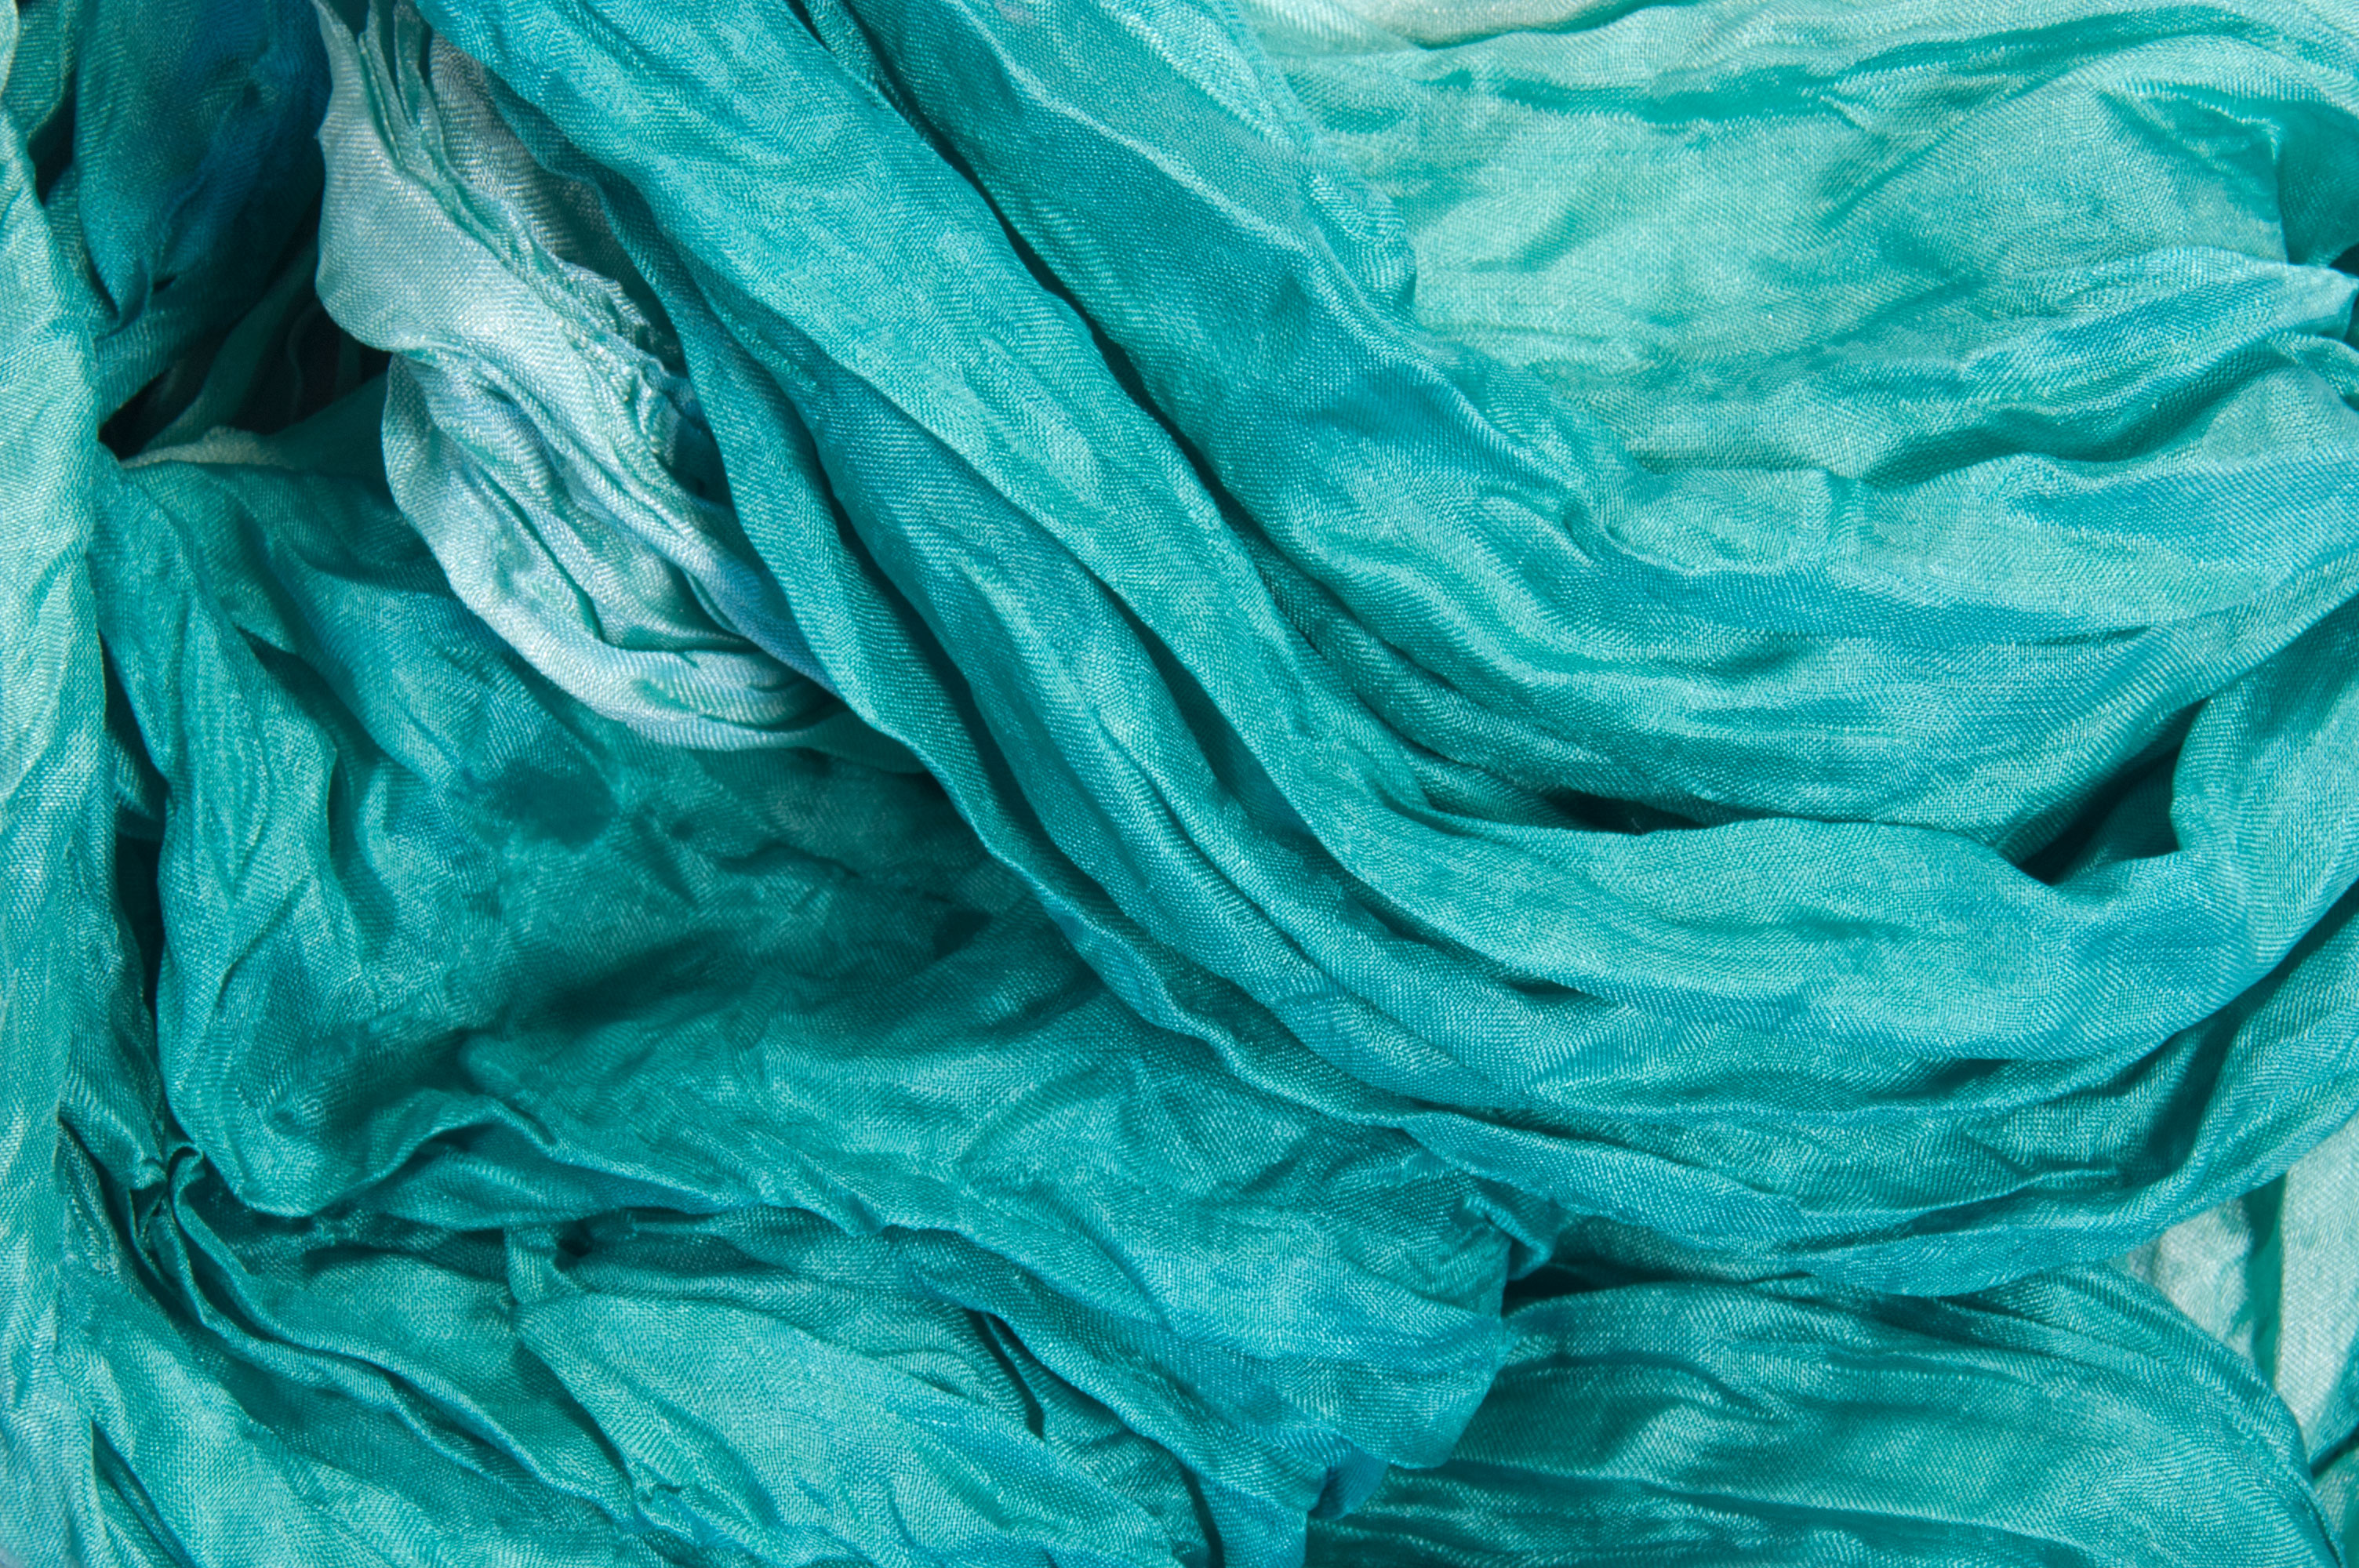 Silk wrinkle scarf turquoise